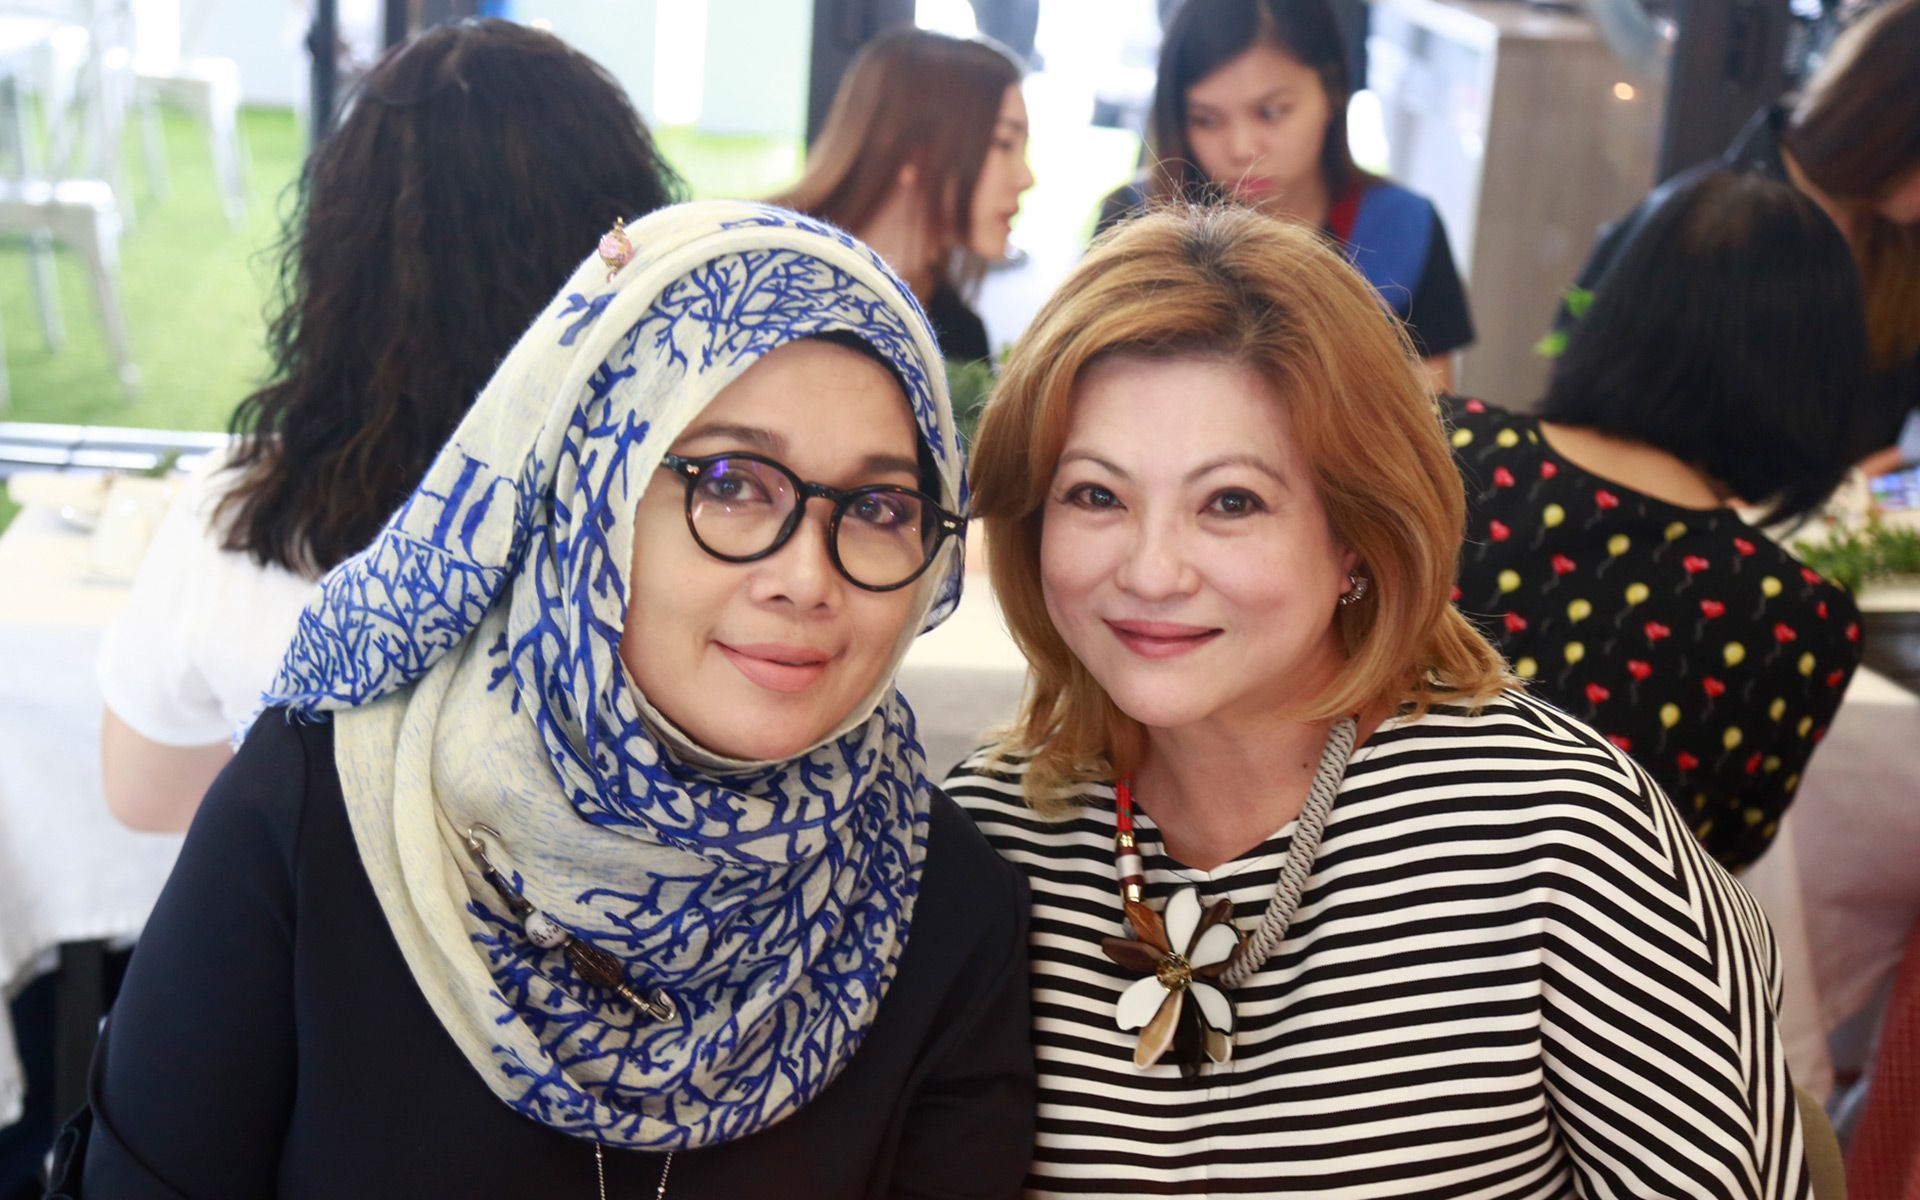 Datin Anna Zakaria and Datin Jude Khadijah